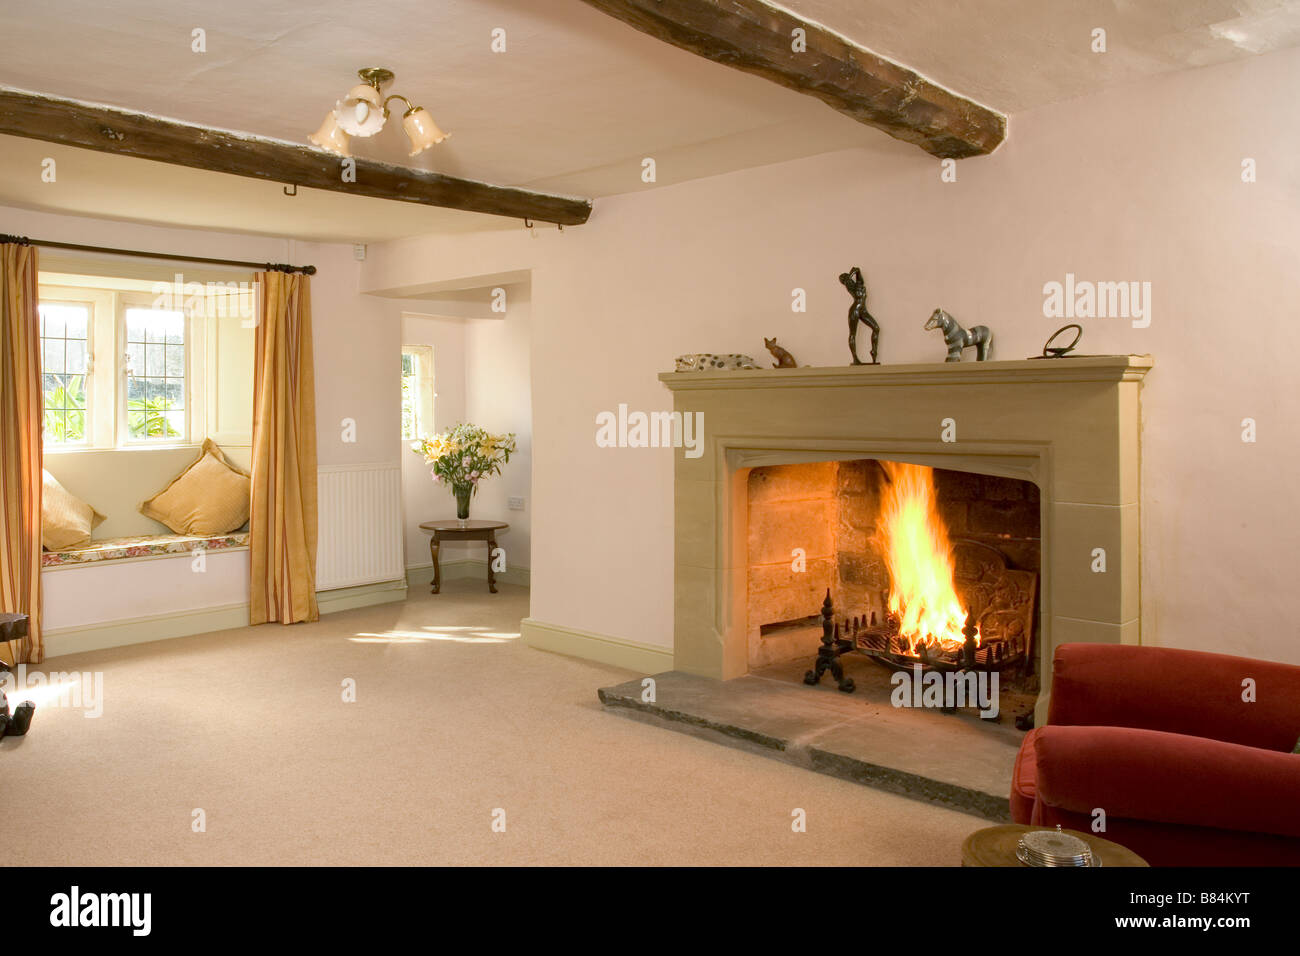 Uk A House Interior Large Open Fire Stock Photo 22231100